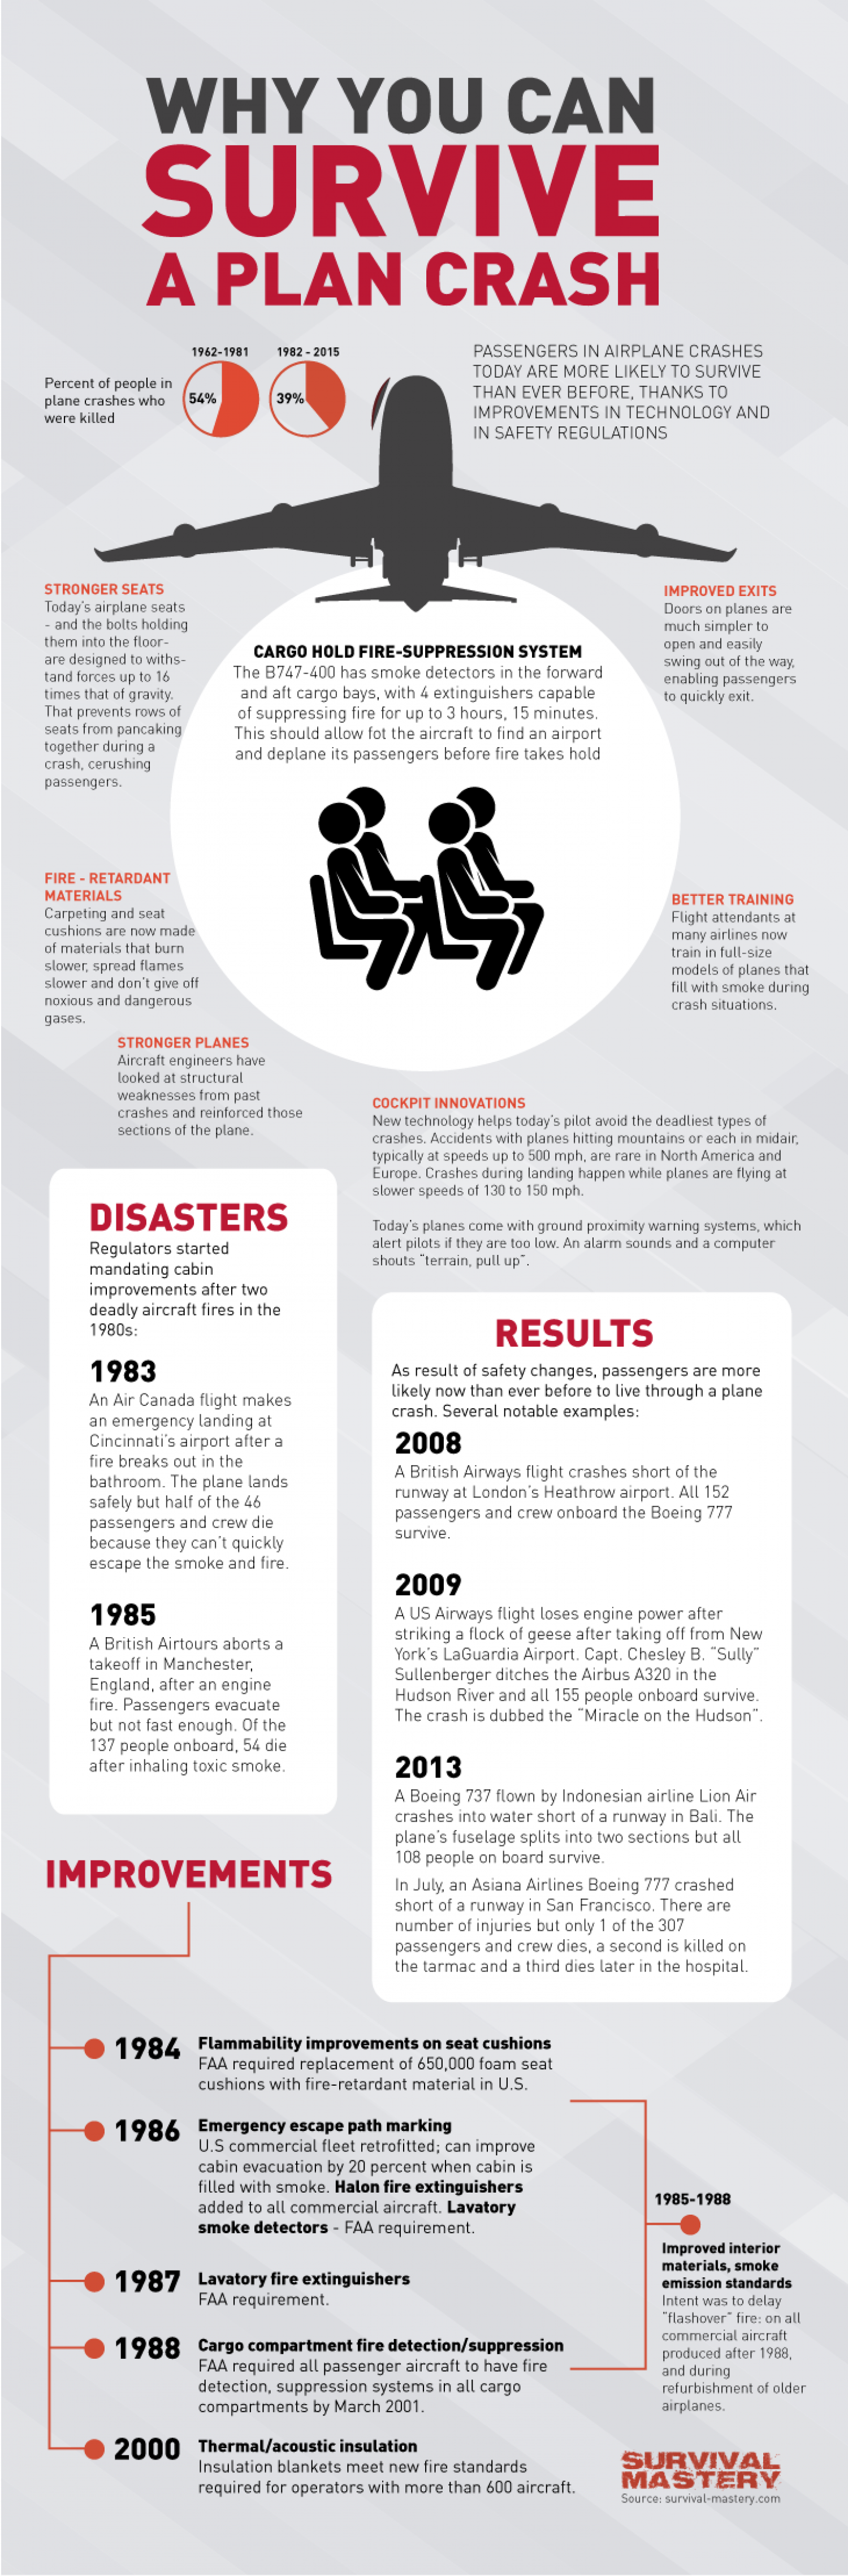 Why You Can Survive Plane Crash Infographic